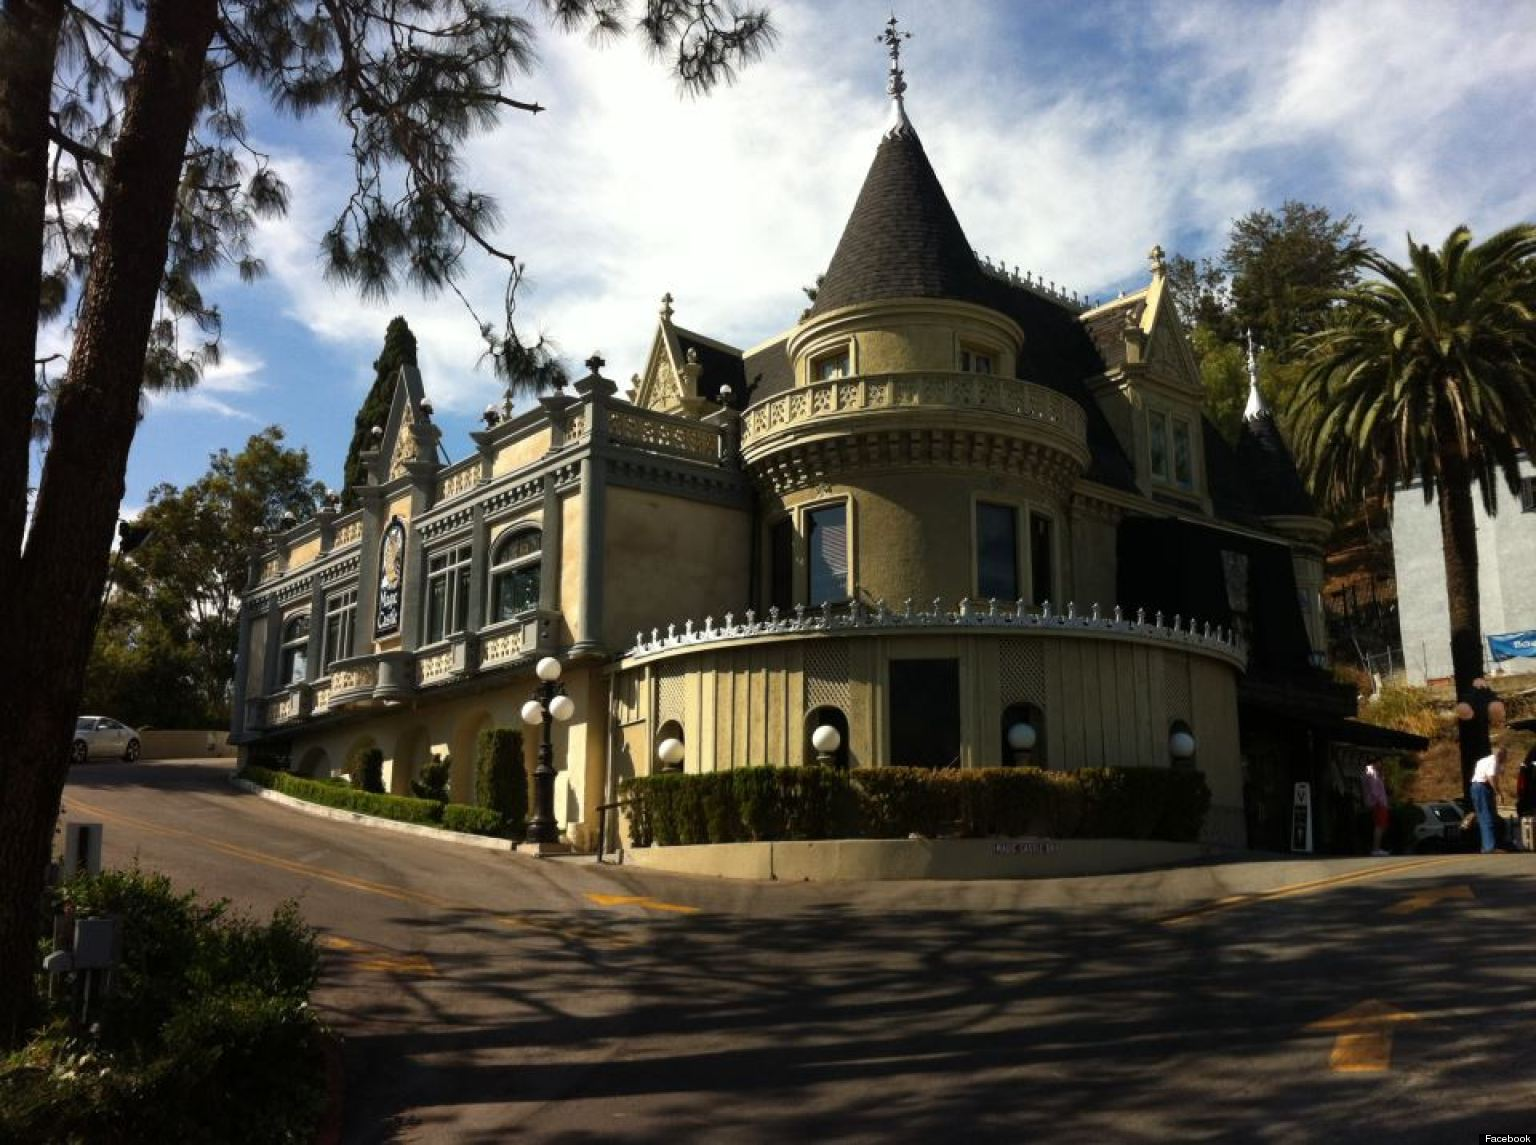 hollywood 39 s magic castle getting movie treatment from producer ted field hollywood reporter. Black Bedroom Furniture Sets. Home Design Ideas